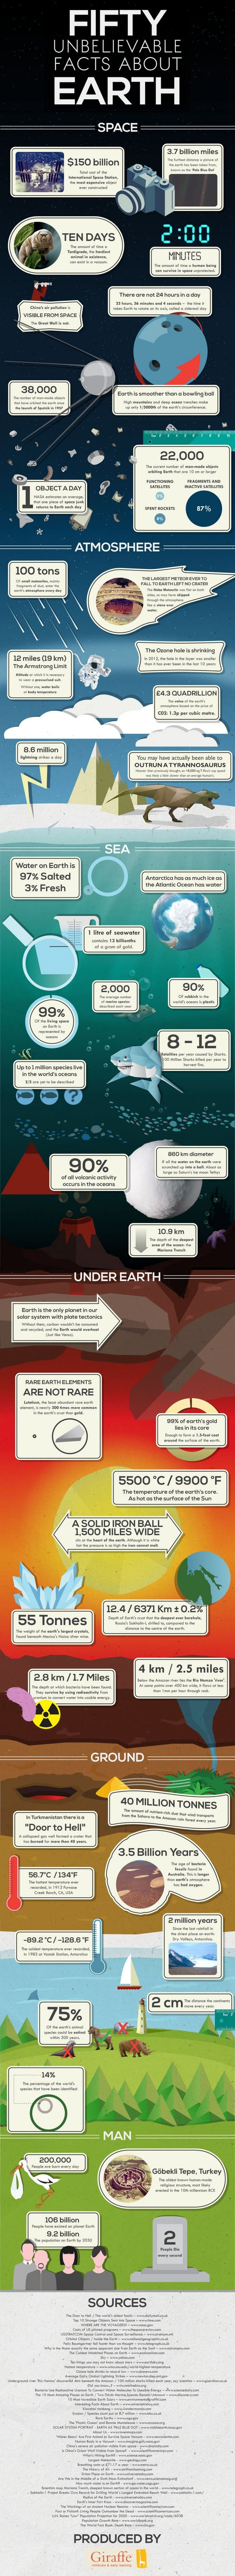 50 Unbelievable Facts About Earth Infographic